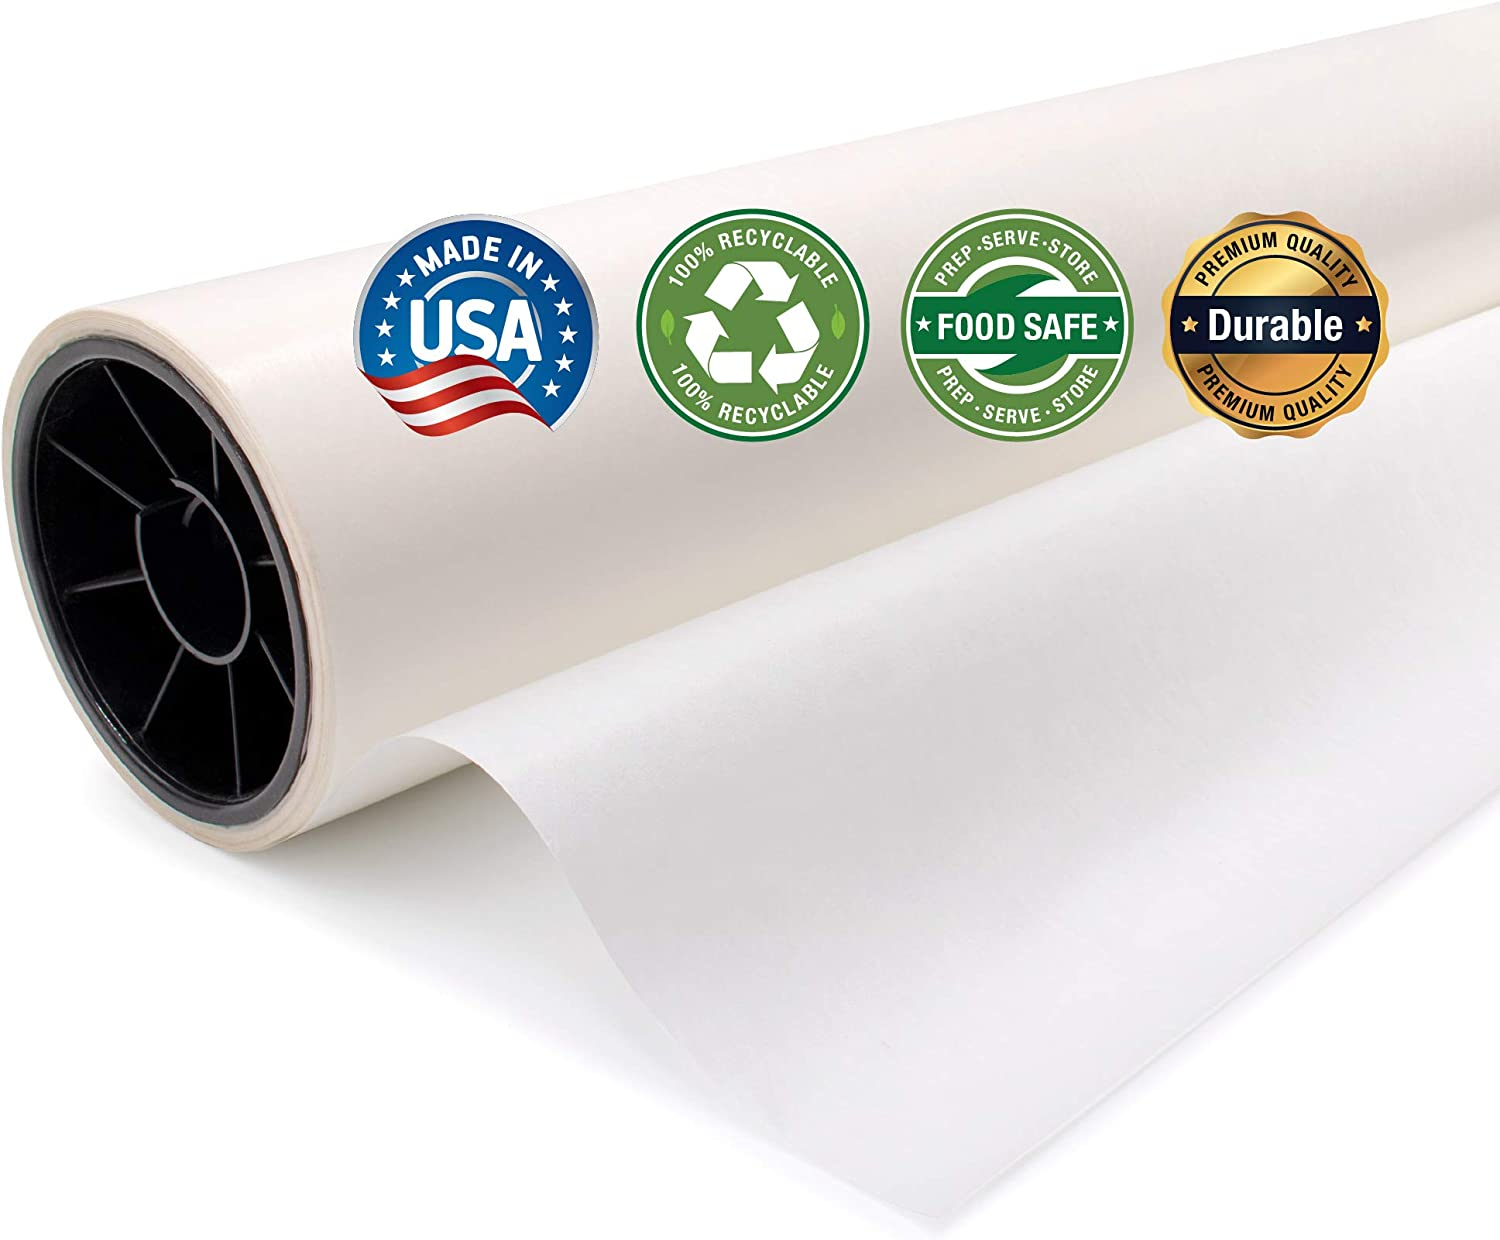 25 Pound Canson Glassine Art Paper Roll for Use as Slip Sheet to Protect Artwork 36 Inch x 10 Yard Roll